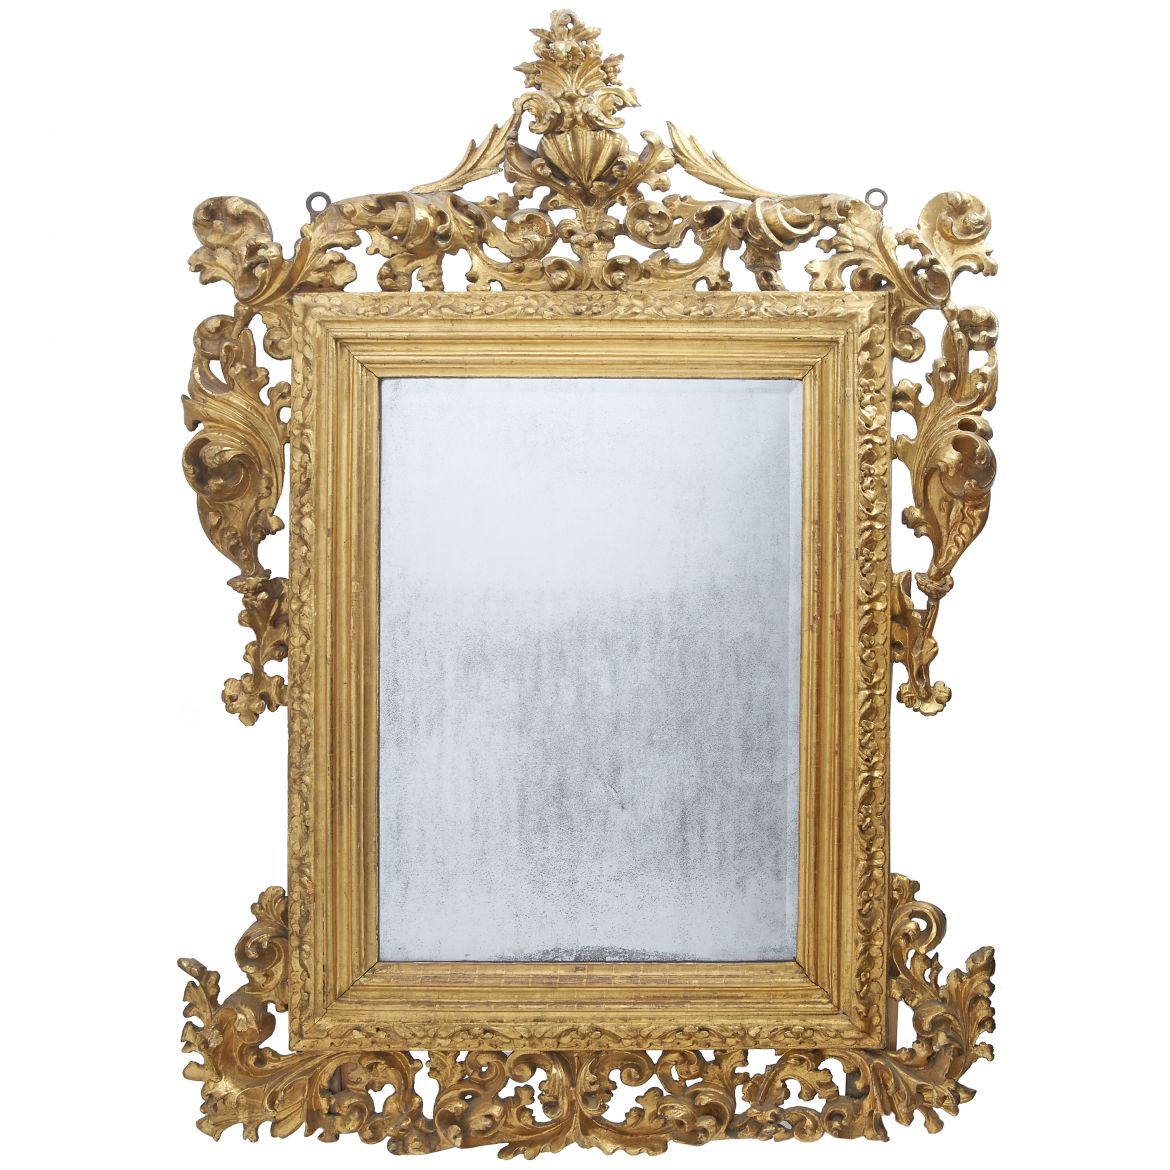 Italian 18th Century Carved Giltwood Mirror